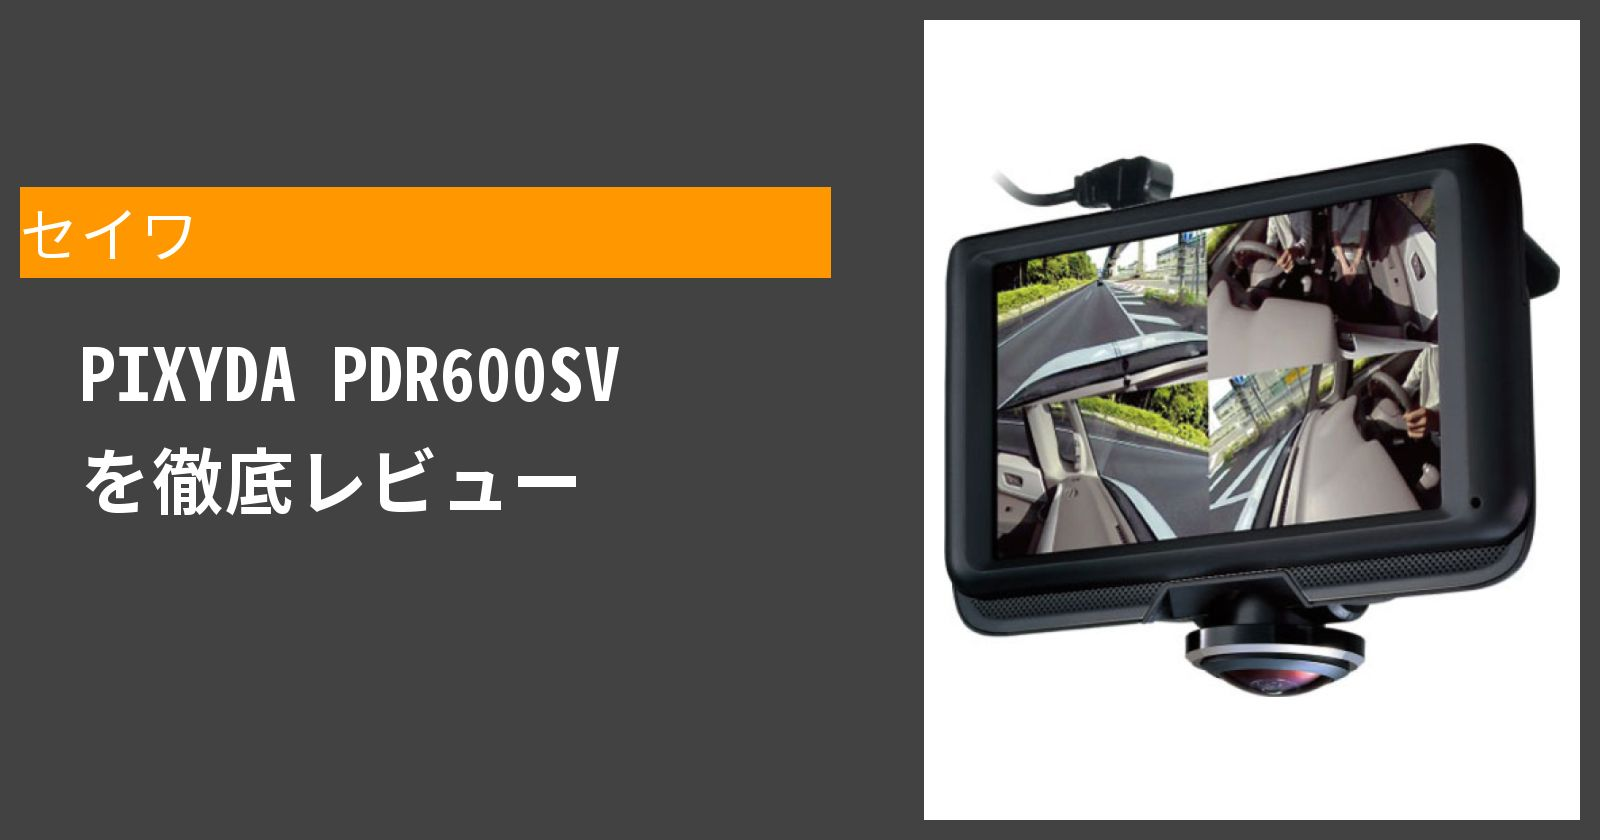 PIXYDA PDR600SVを徹底評価